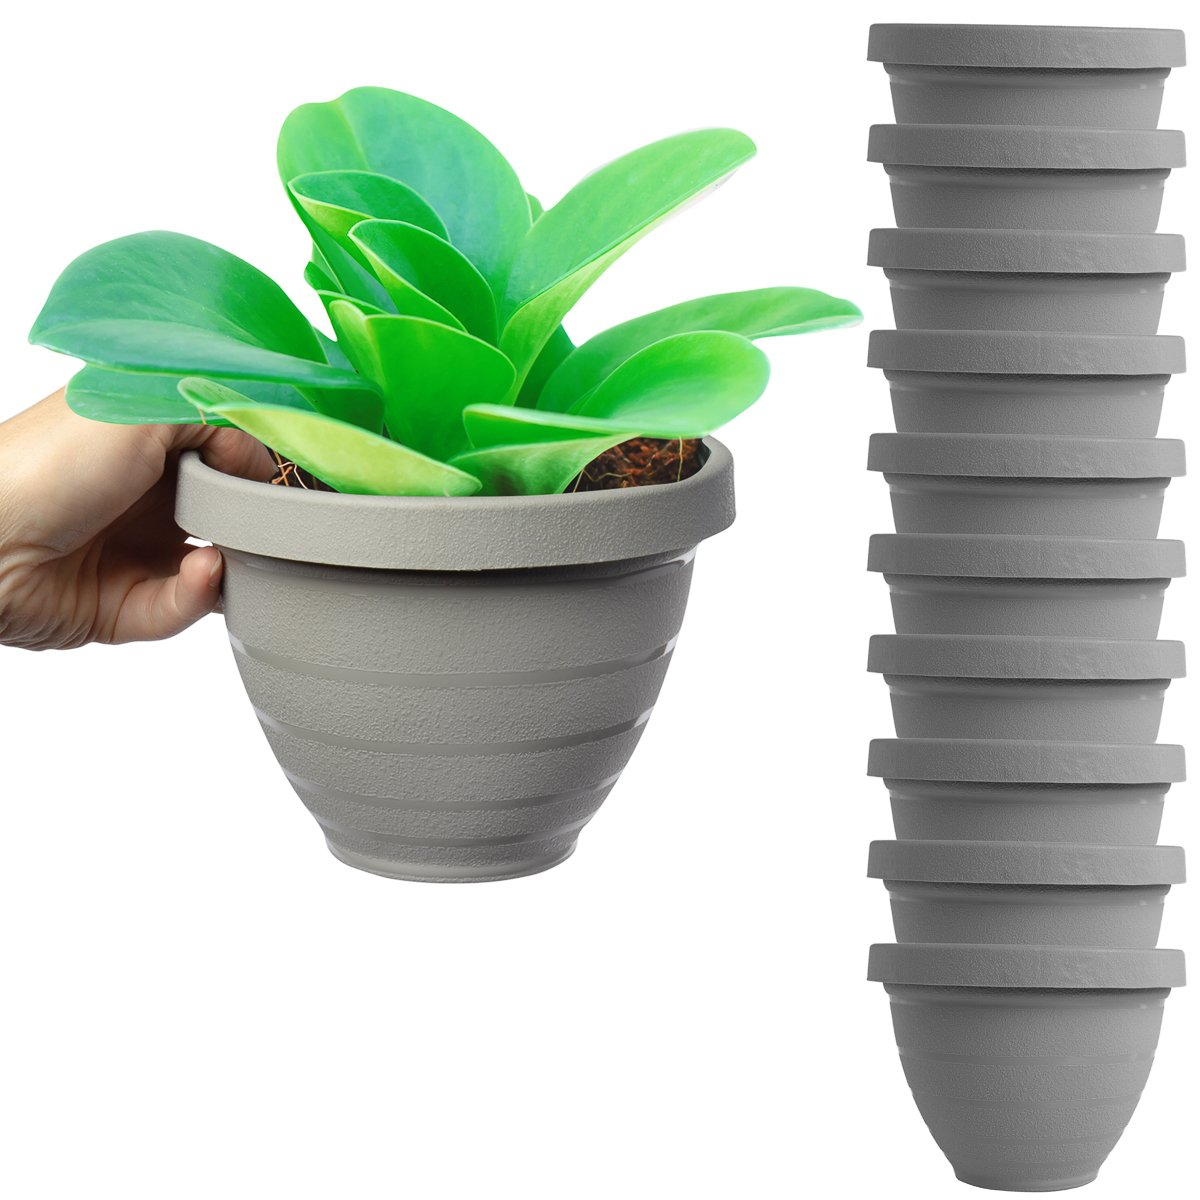 HC Companies (10 Pack) 6 inch Self Watering Planters for Indoor Plants Garden House Live Plant